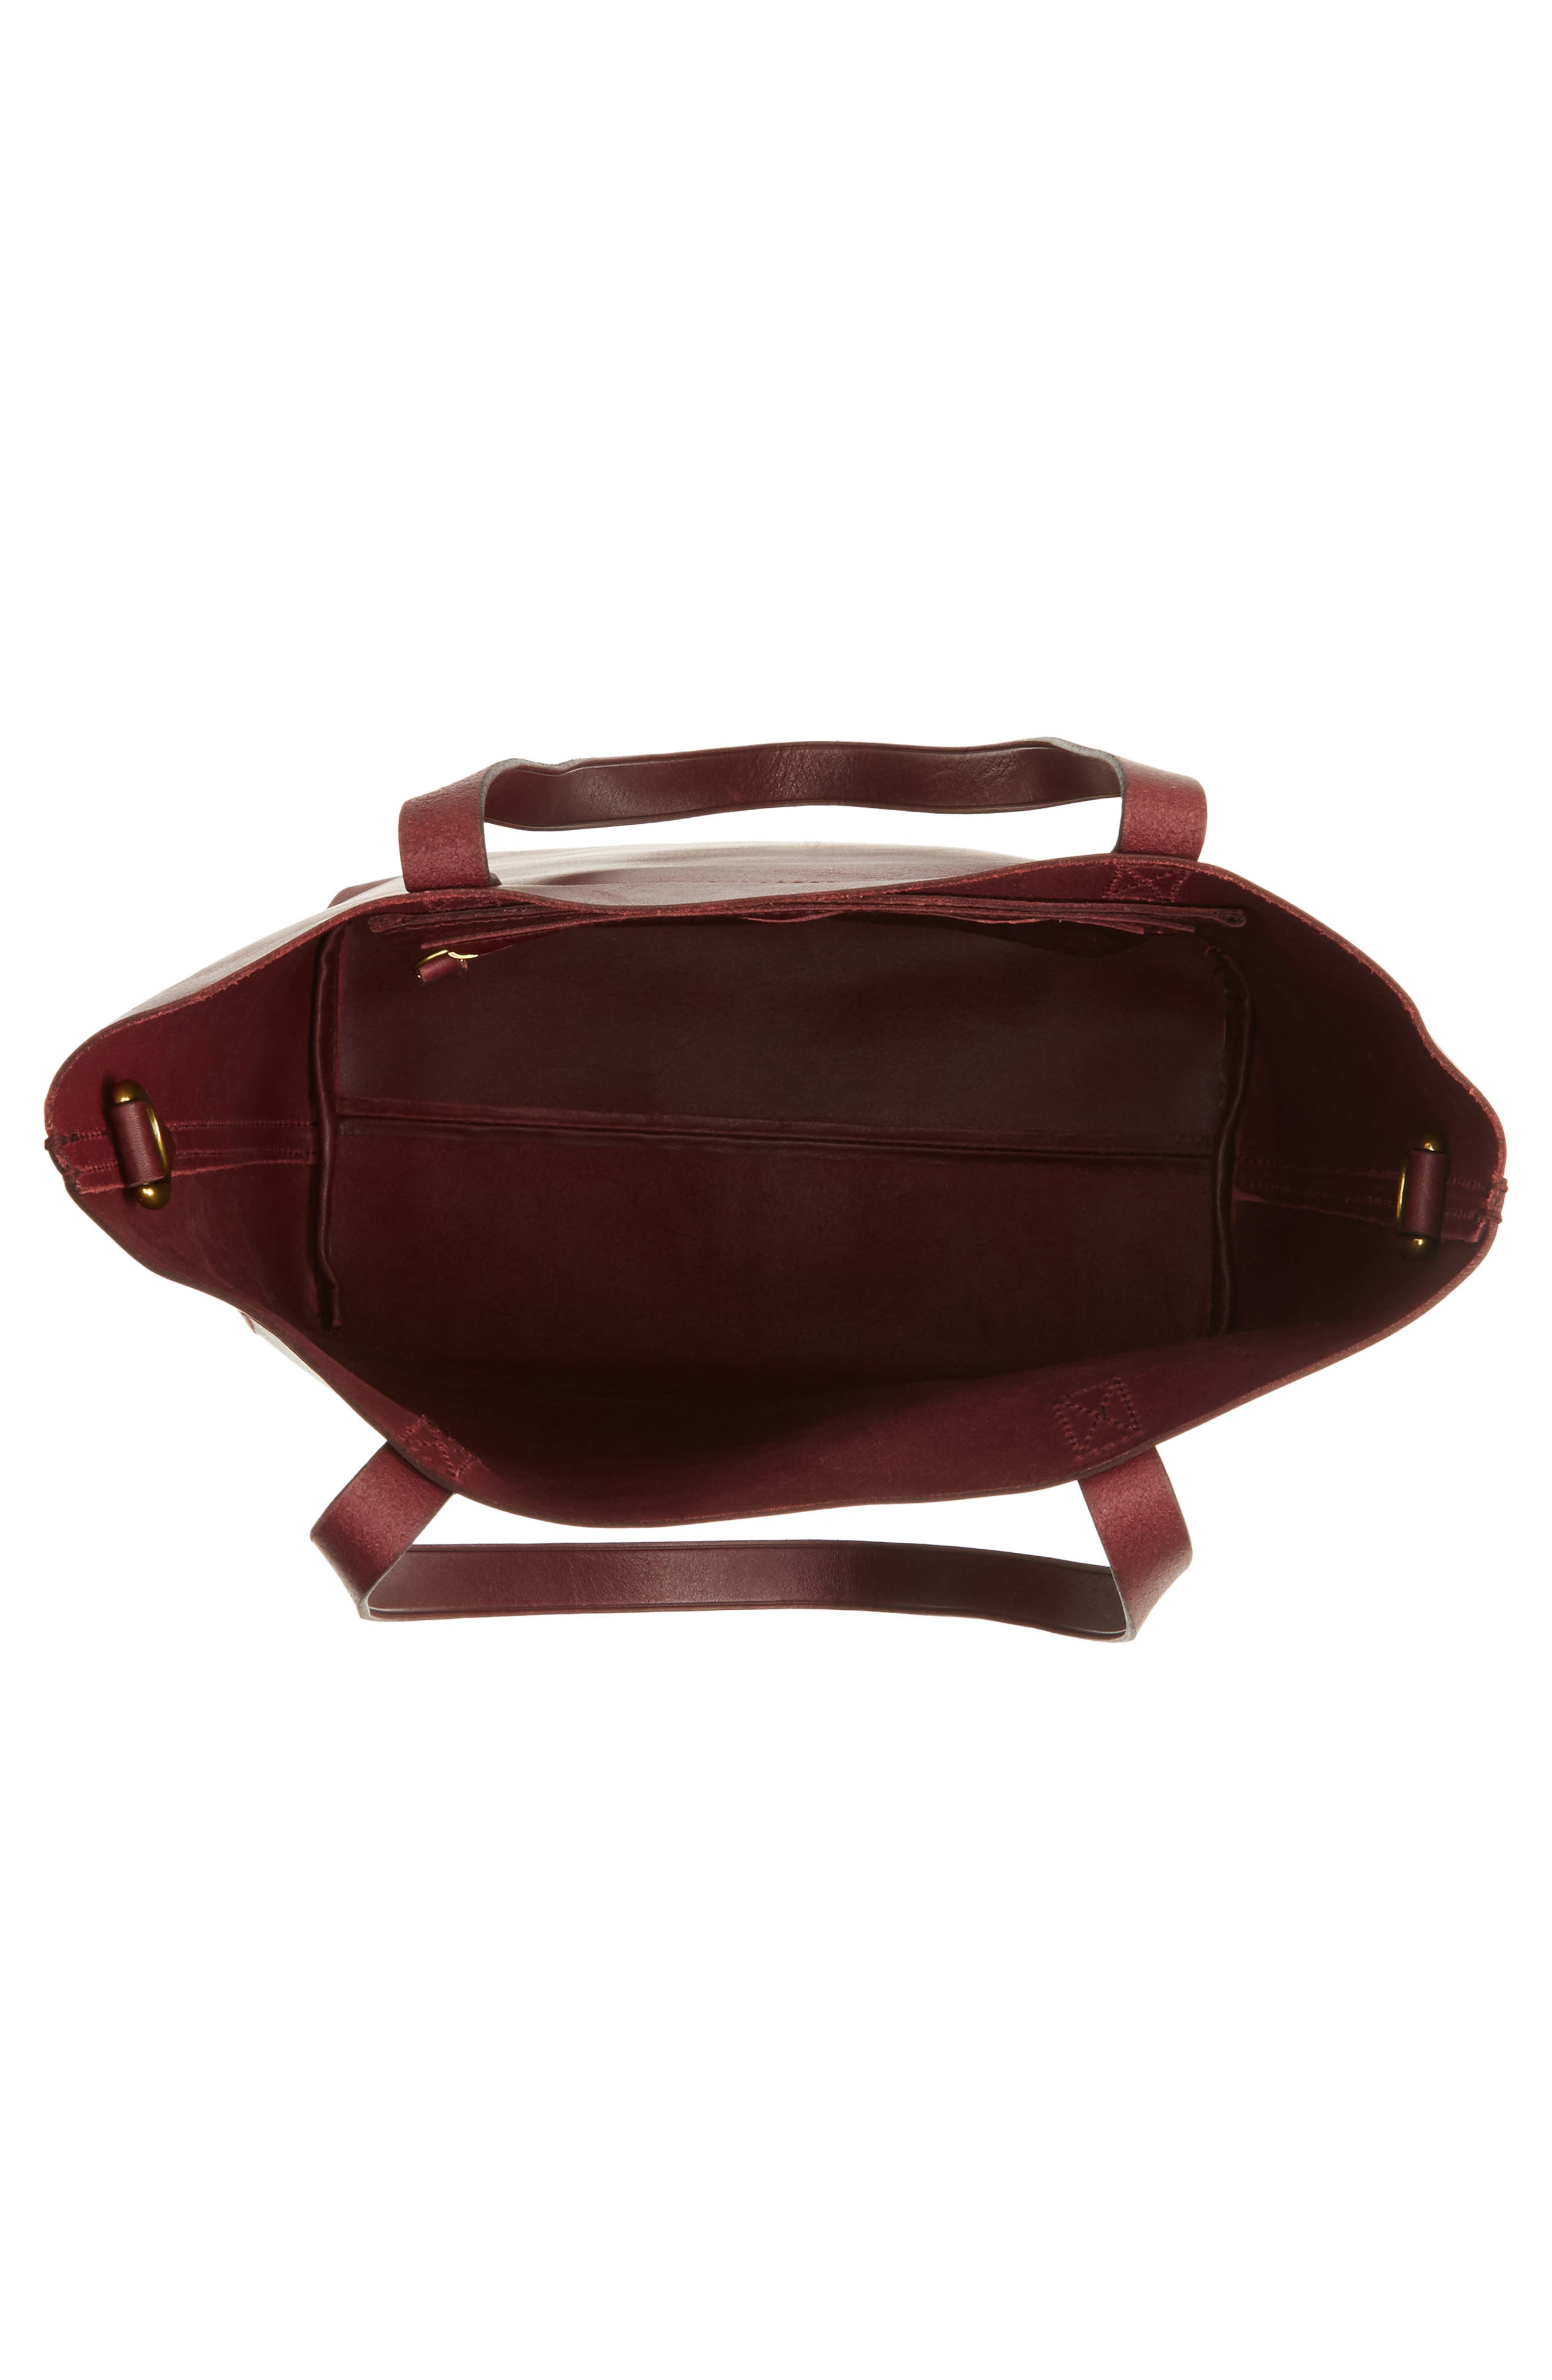 Medium Leather Transport Tote,                             Alternate thumbnail 56, color,